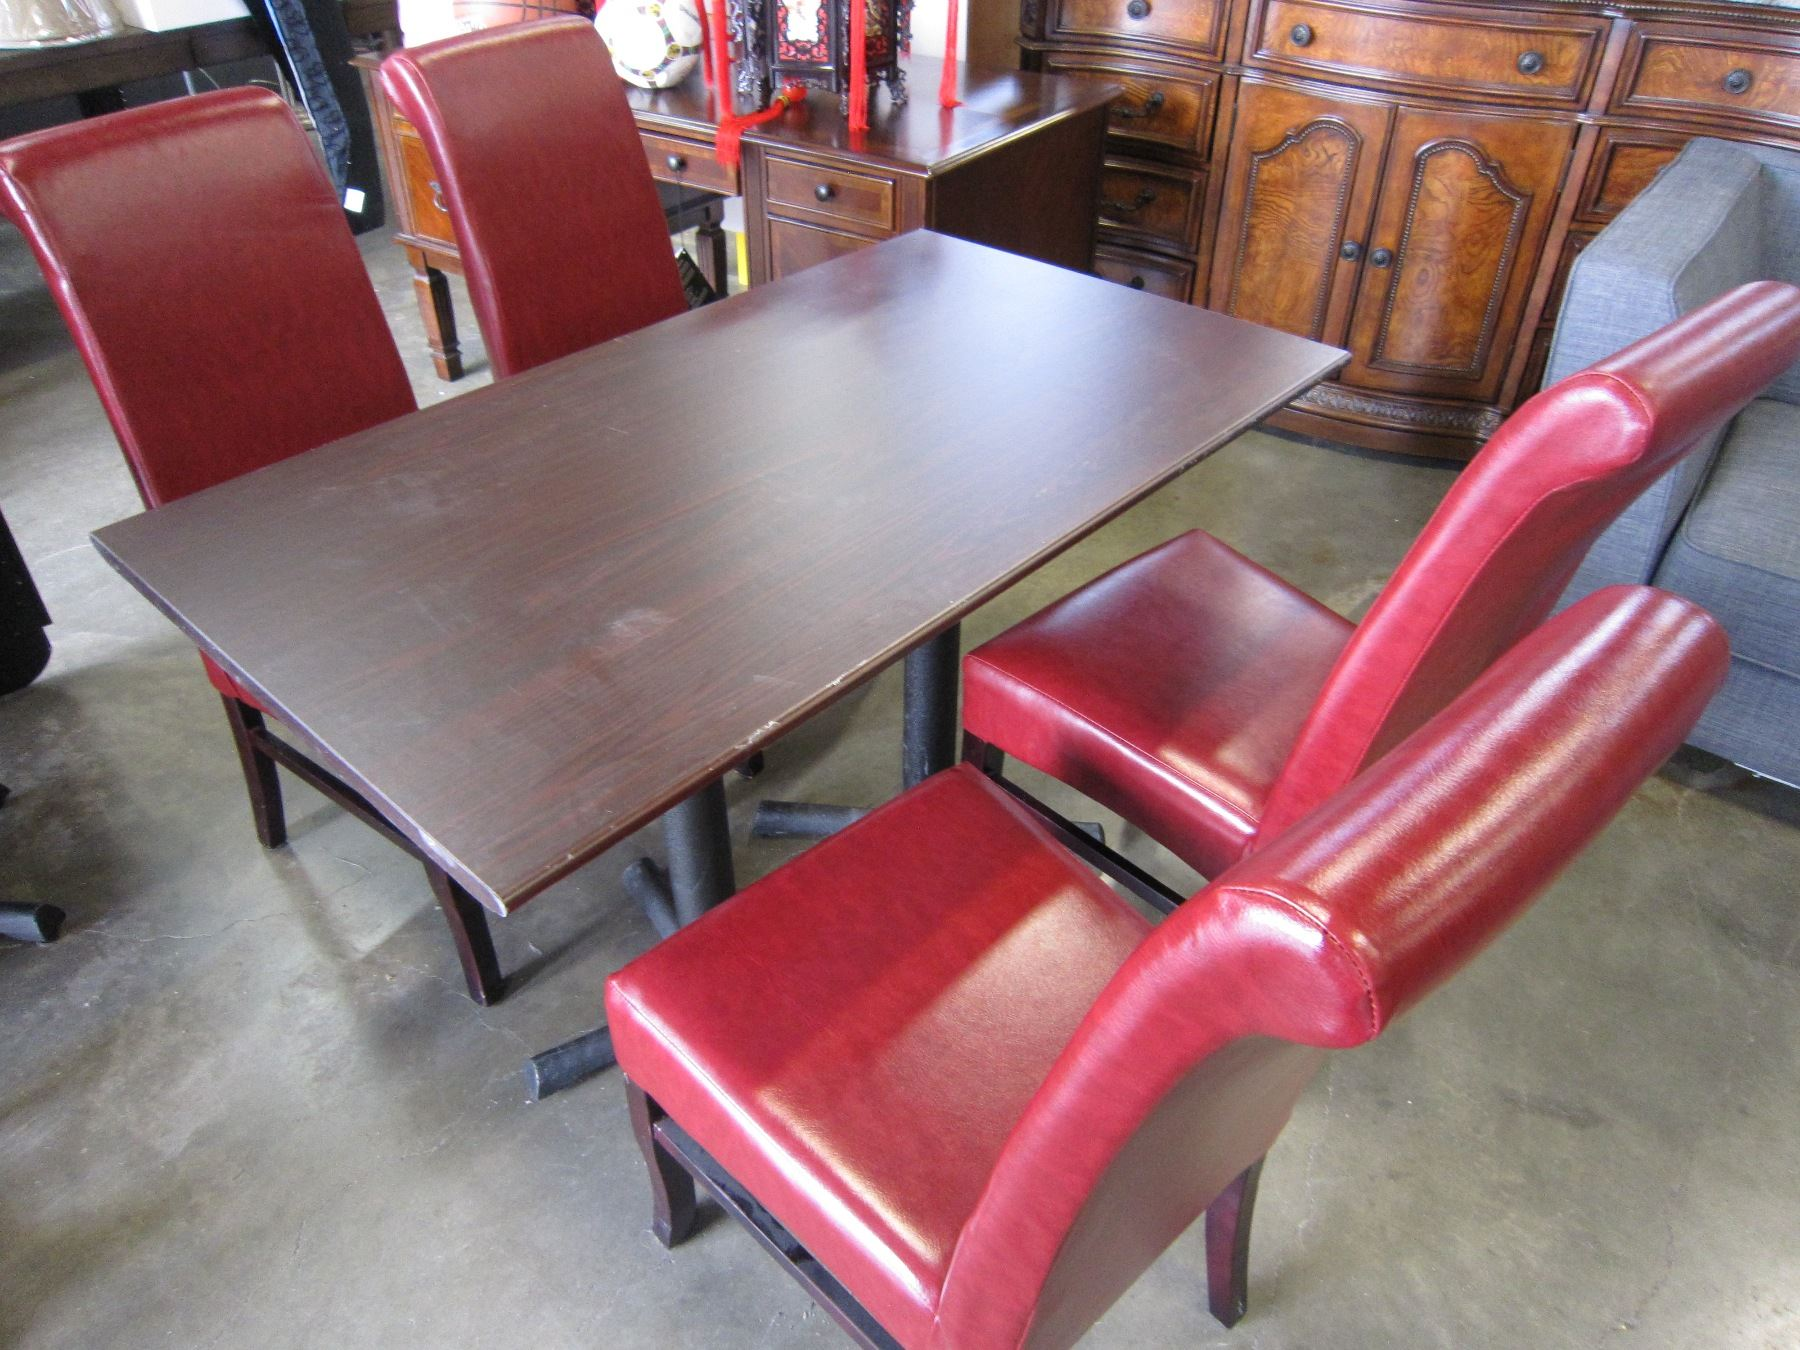 Red Leather Dining Room Chairs Restauarant Table With Cast Iron Base And 4 Red Leather Dining Chairs